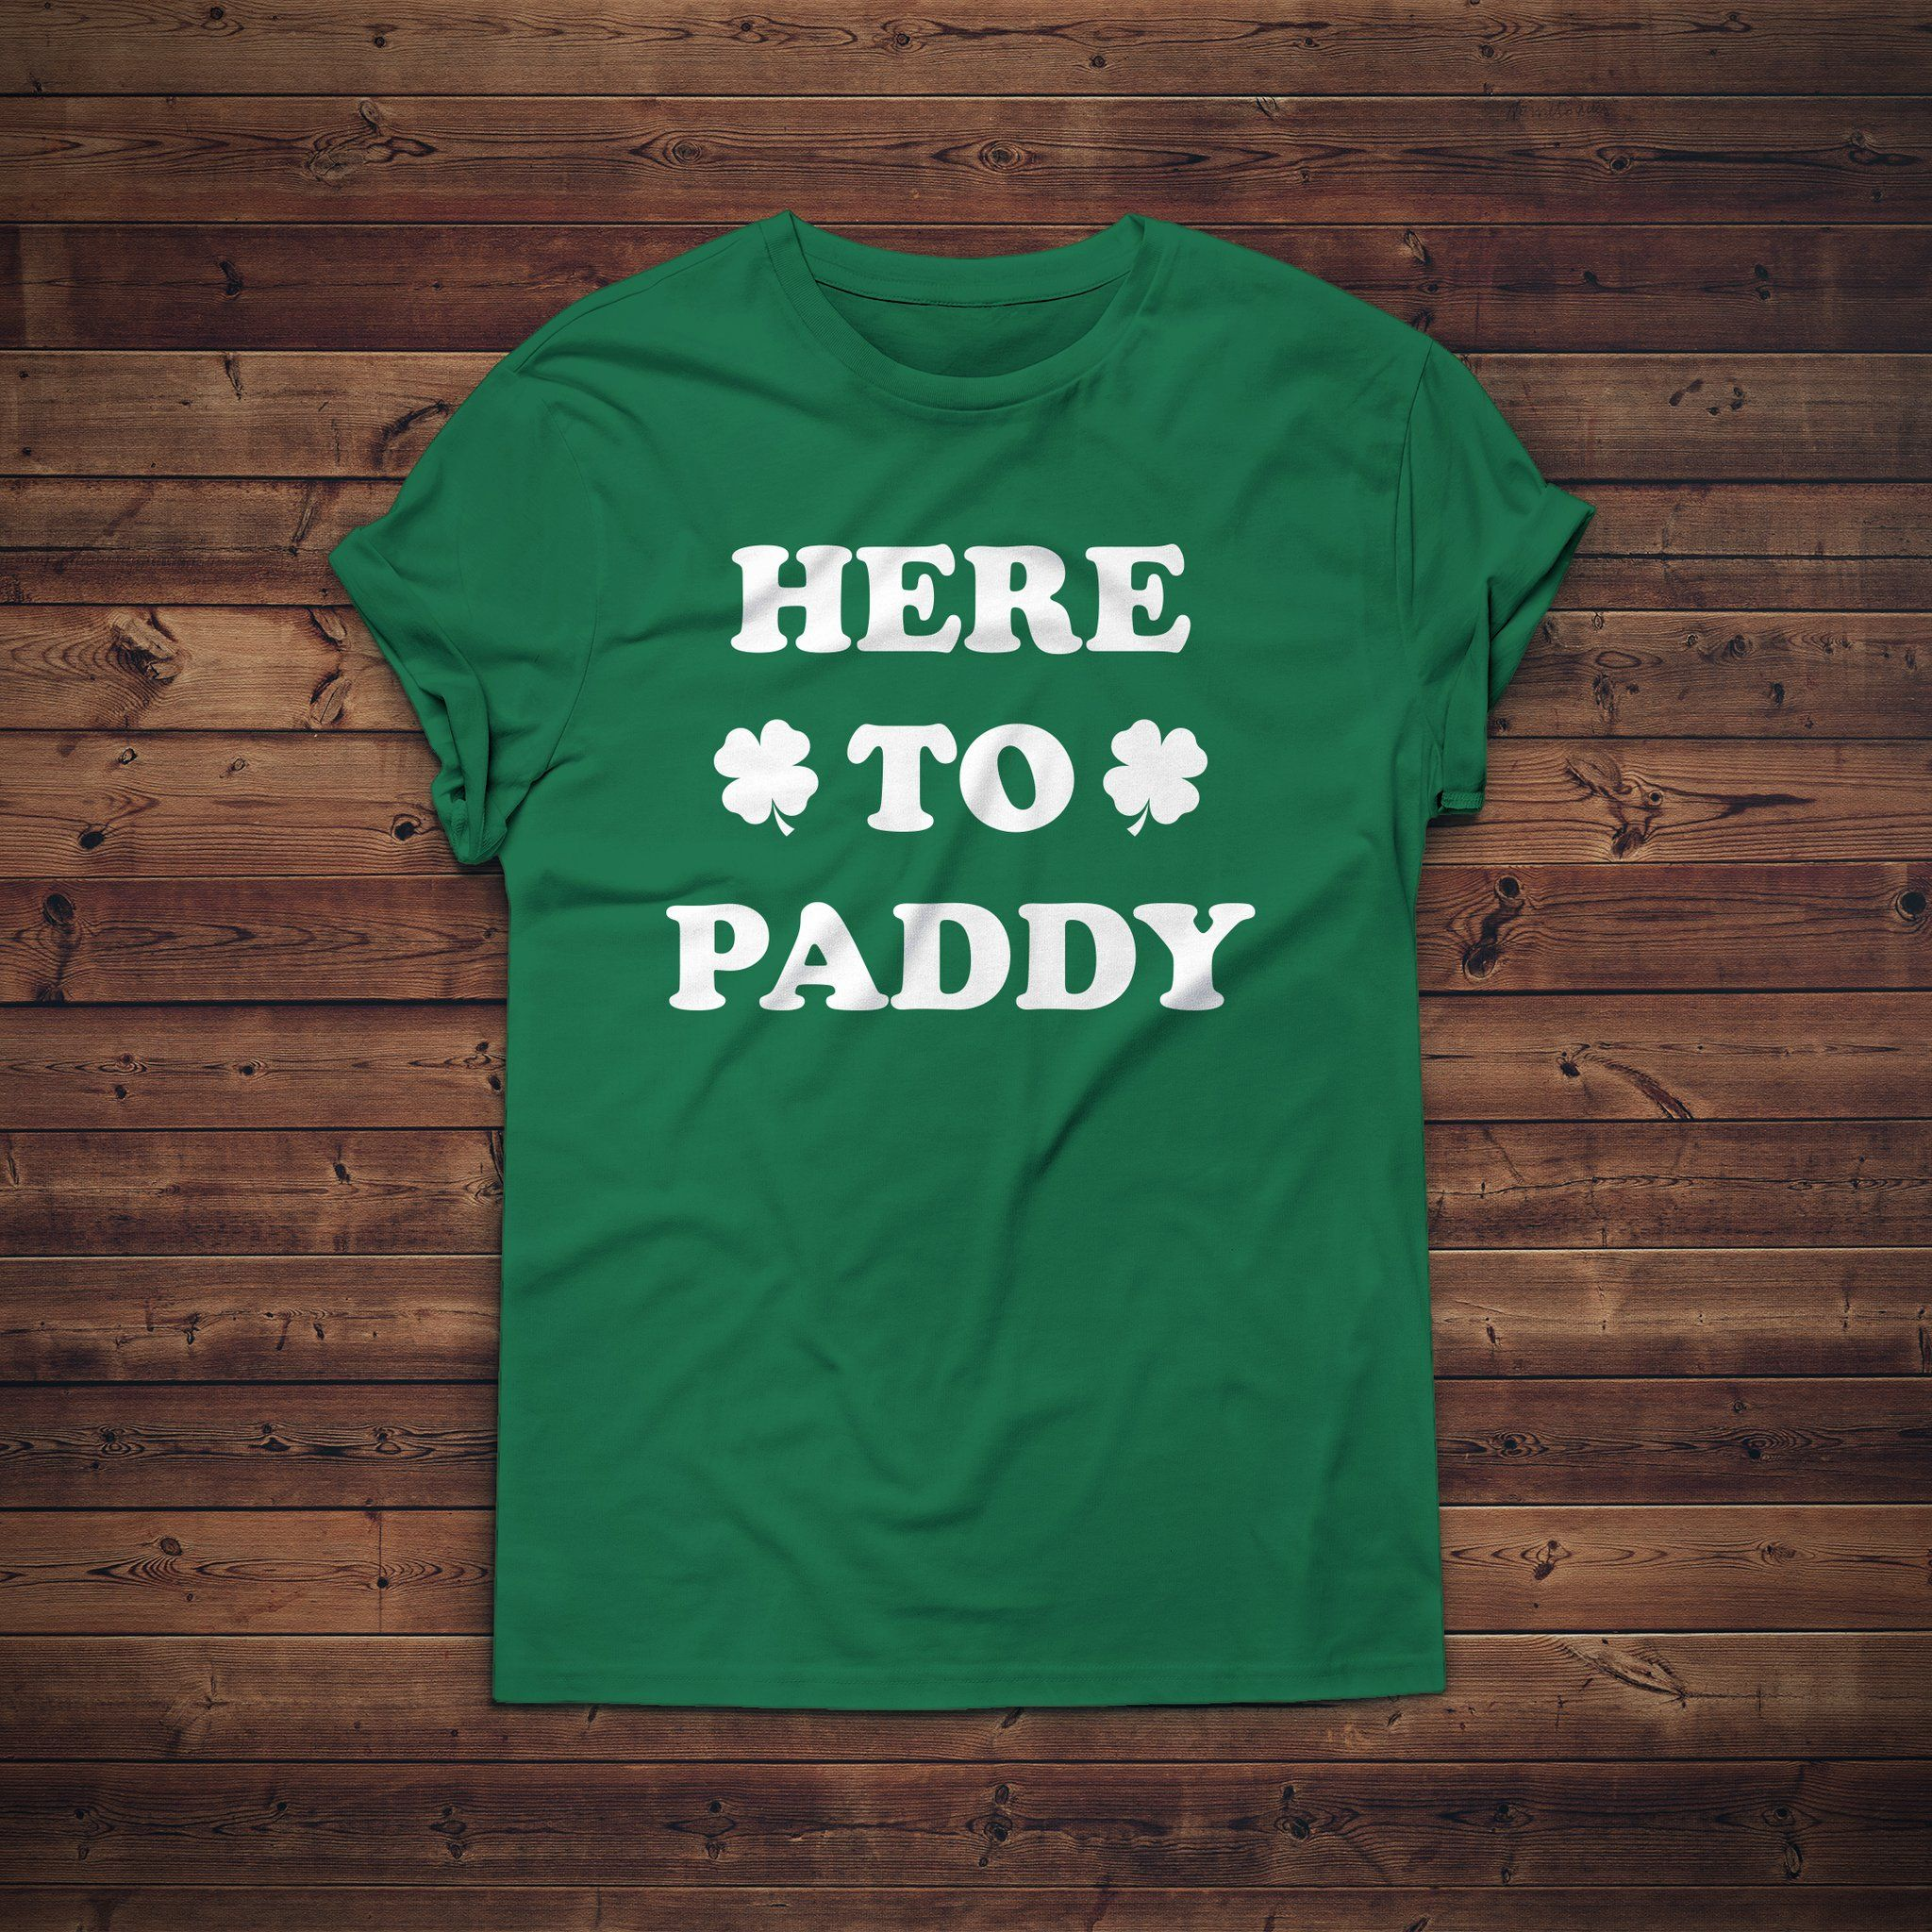 91b012c22 Here to Paddy St. Patrick's Day Shirt Funny St. Patrick's Day Shirt Women's  Mens Unisex St. Paddy's Day